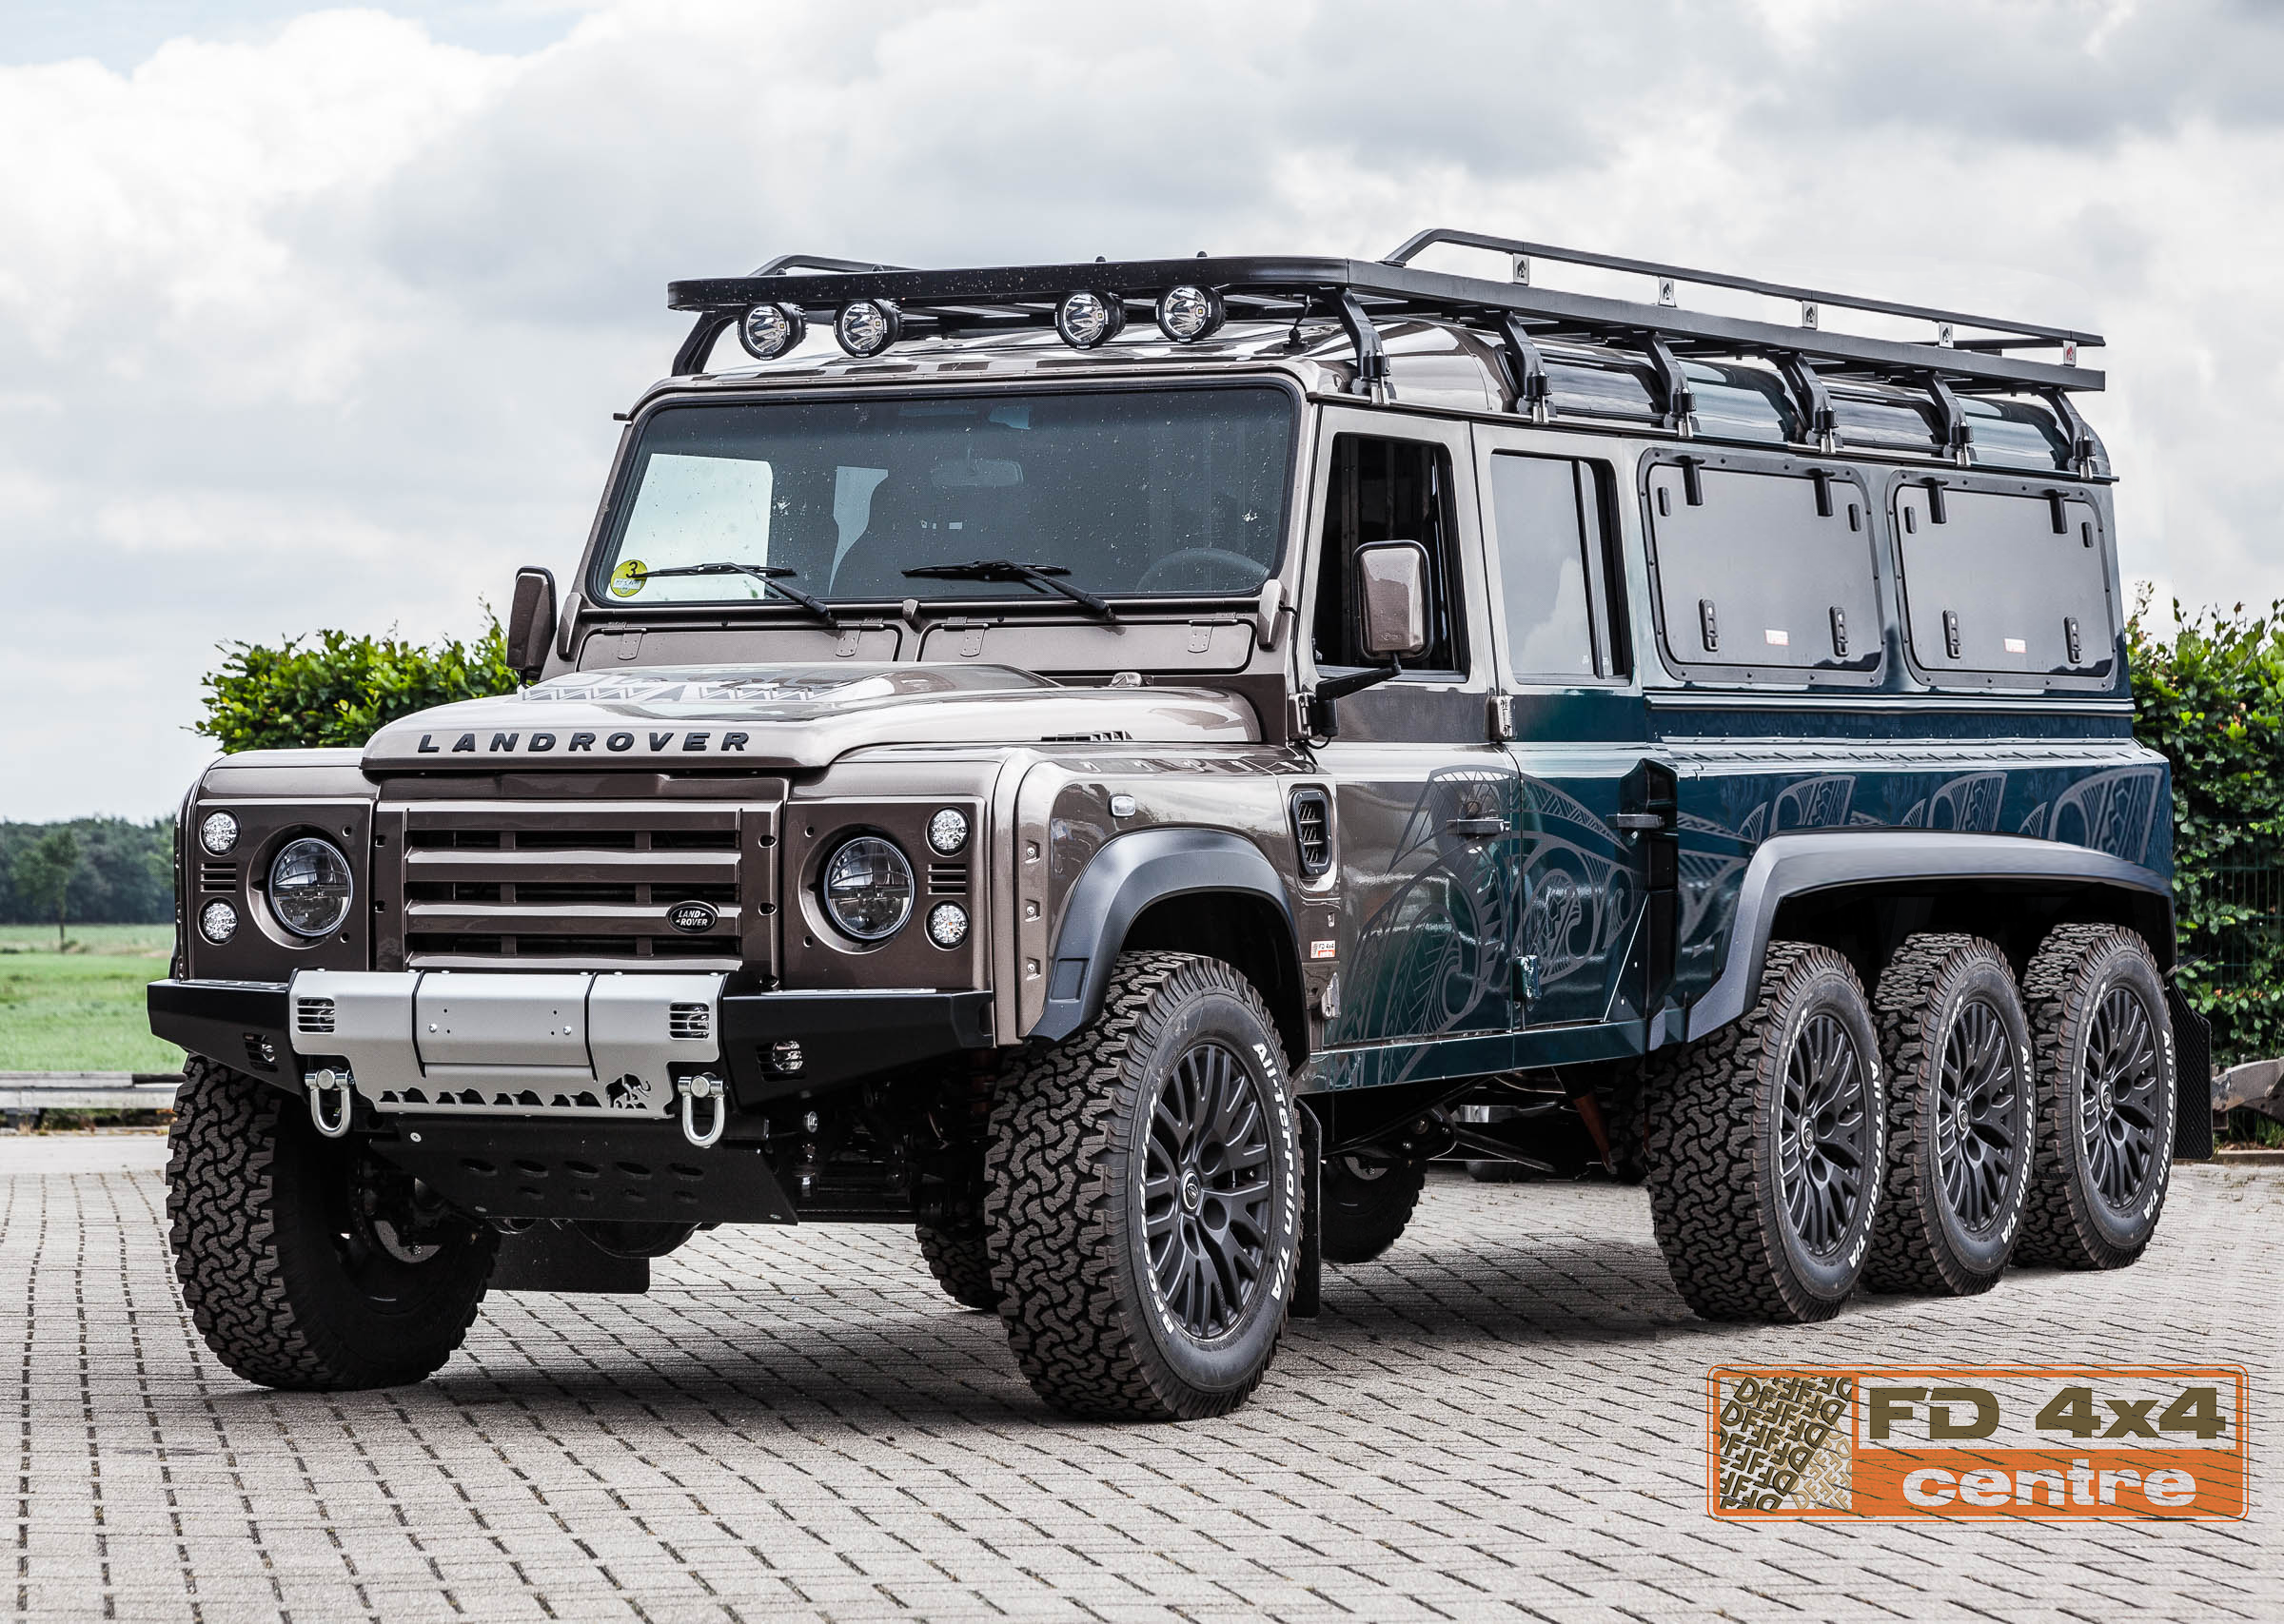 land rover defender 8x8 by fd 4x4 centre with a nice roof rack and bumper from tembo 4x4. Black Bedroom Furniture Sets. Home Design Ideas